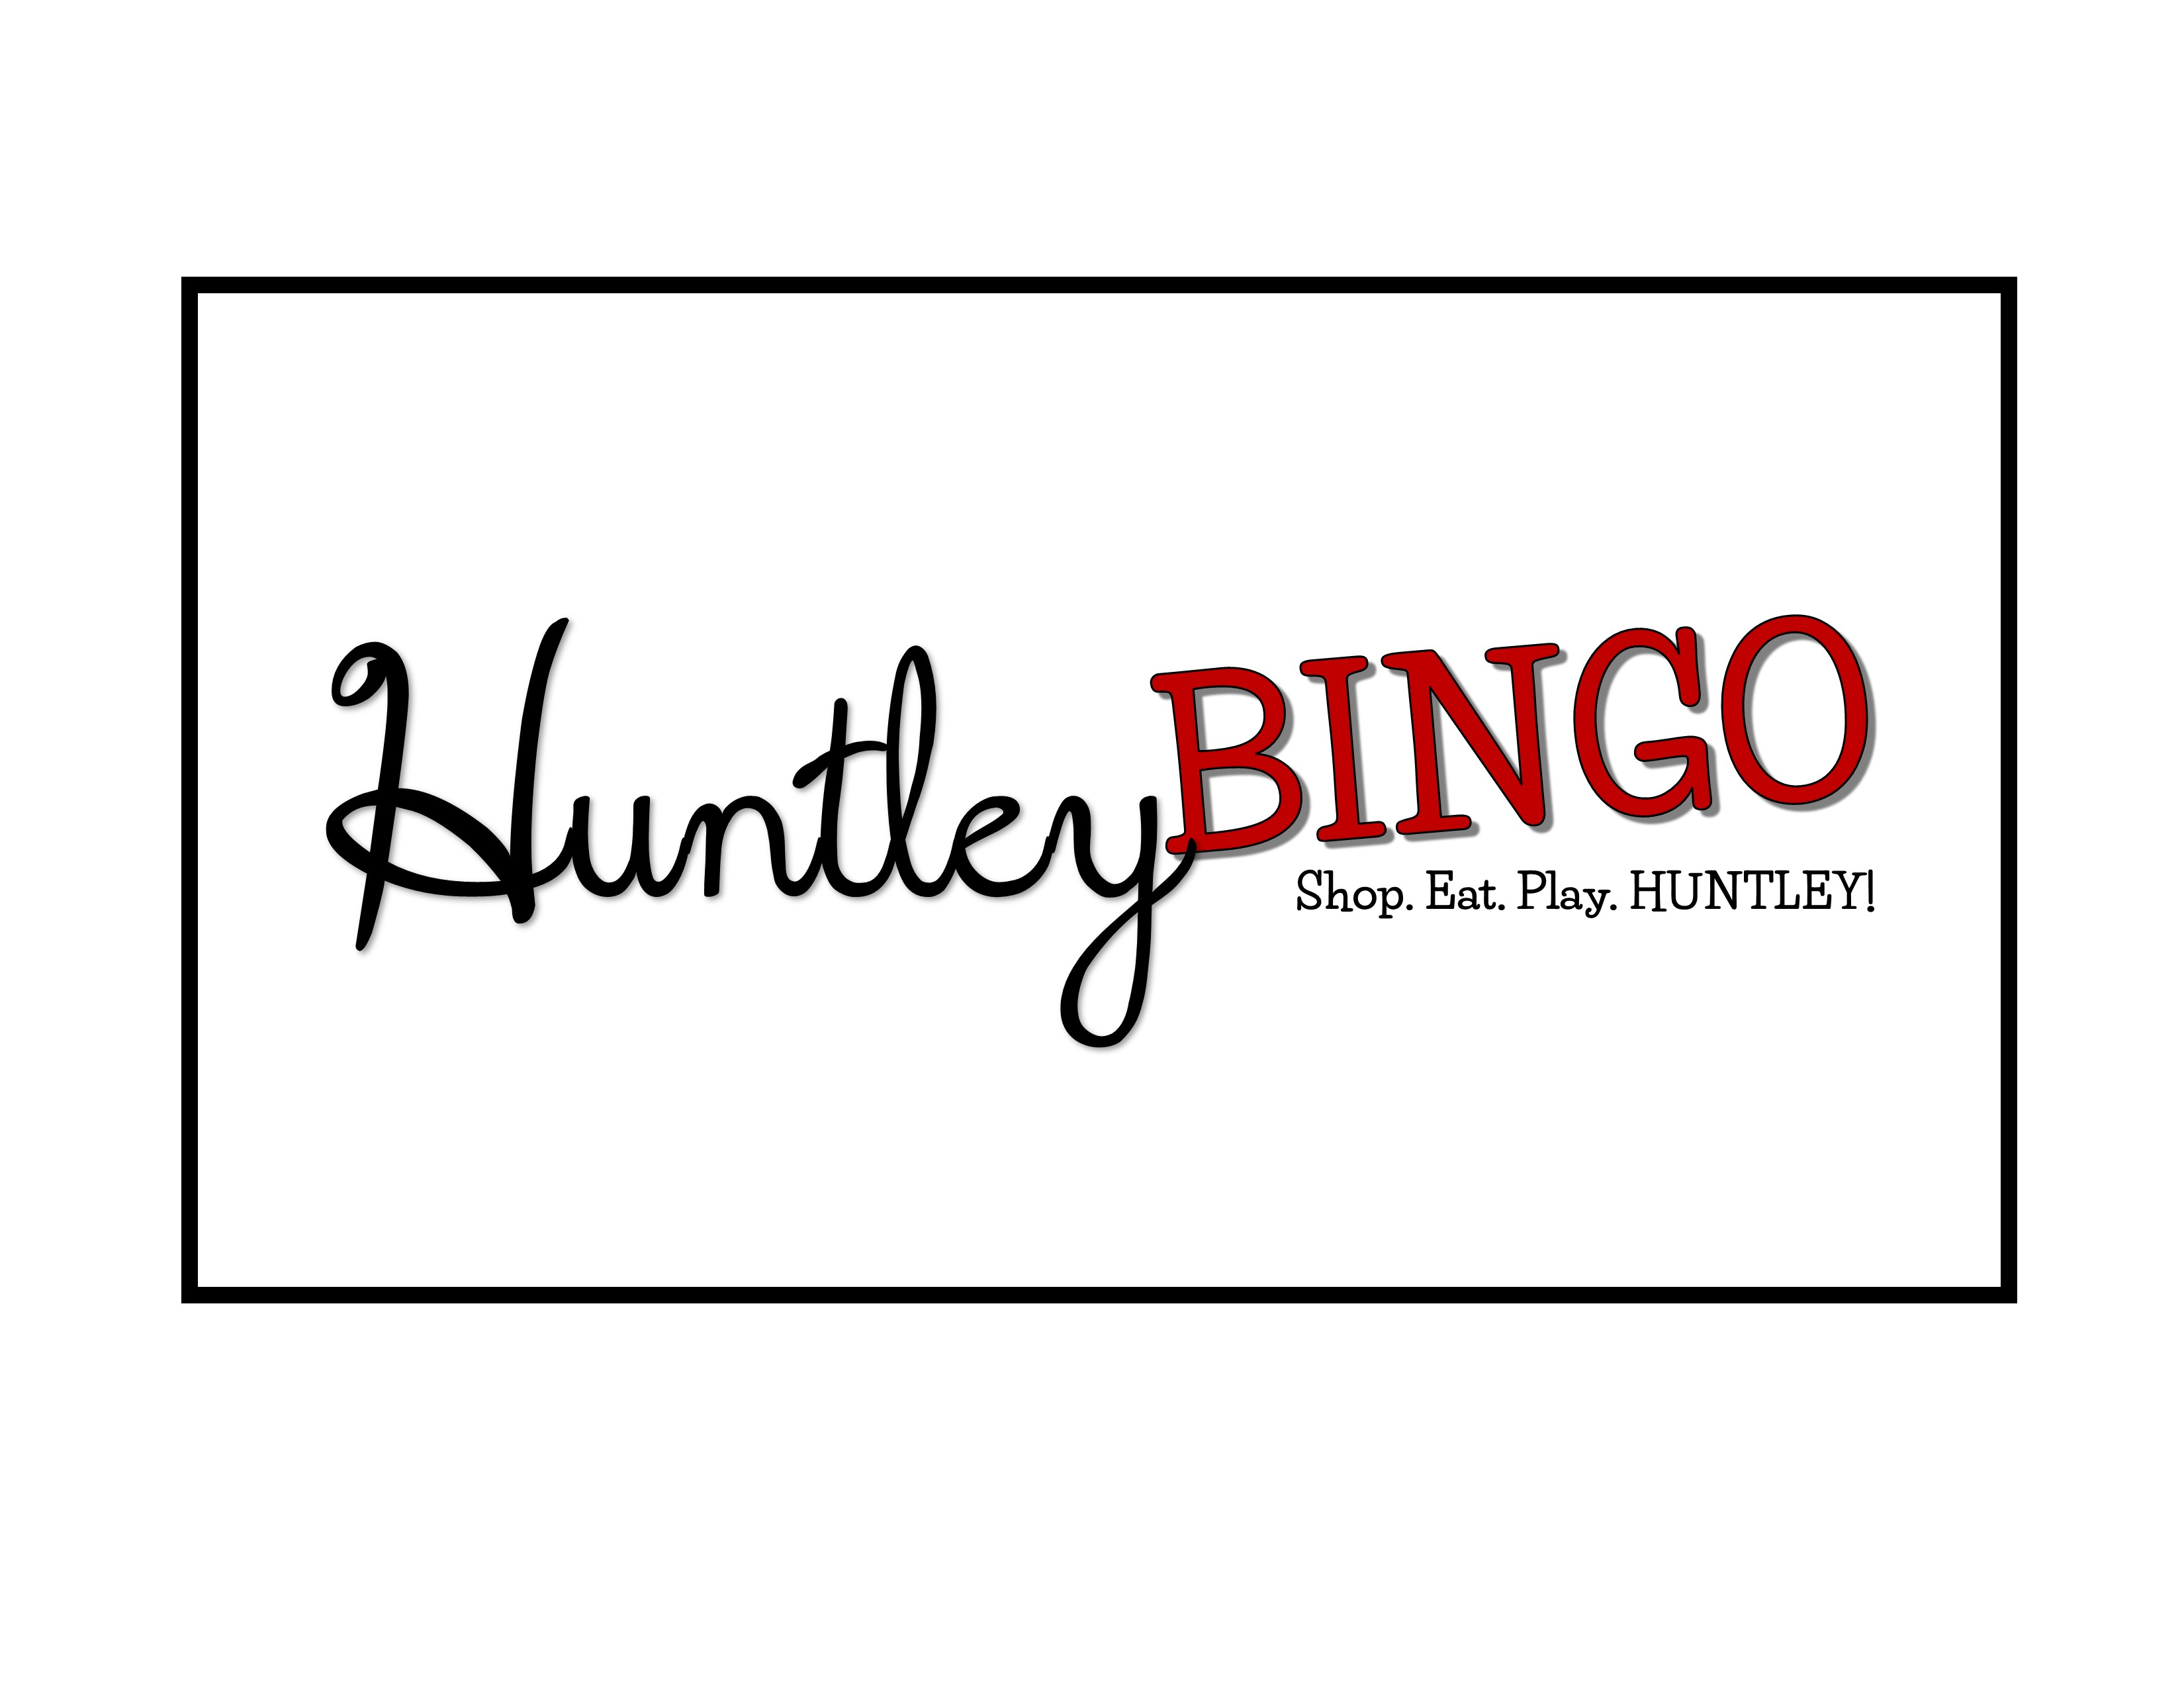 huntley bingo banner